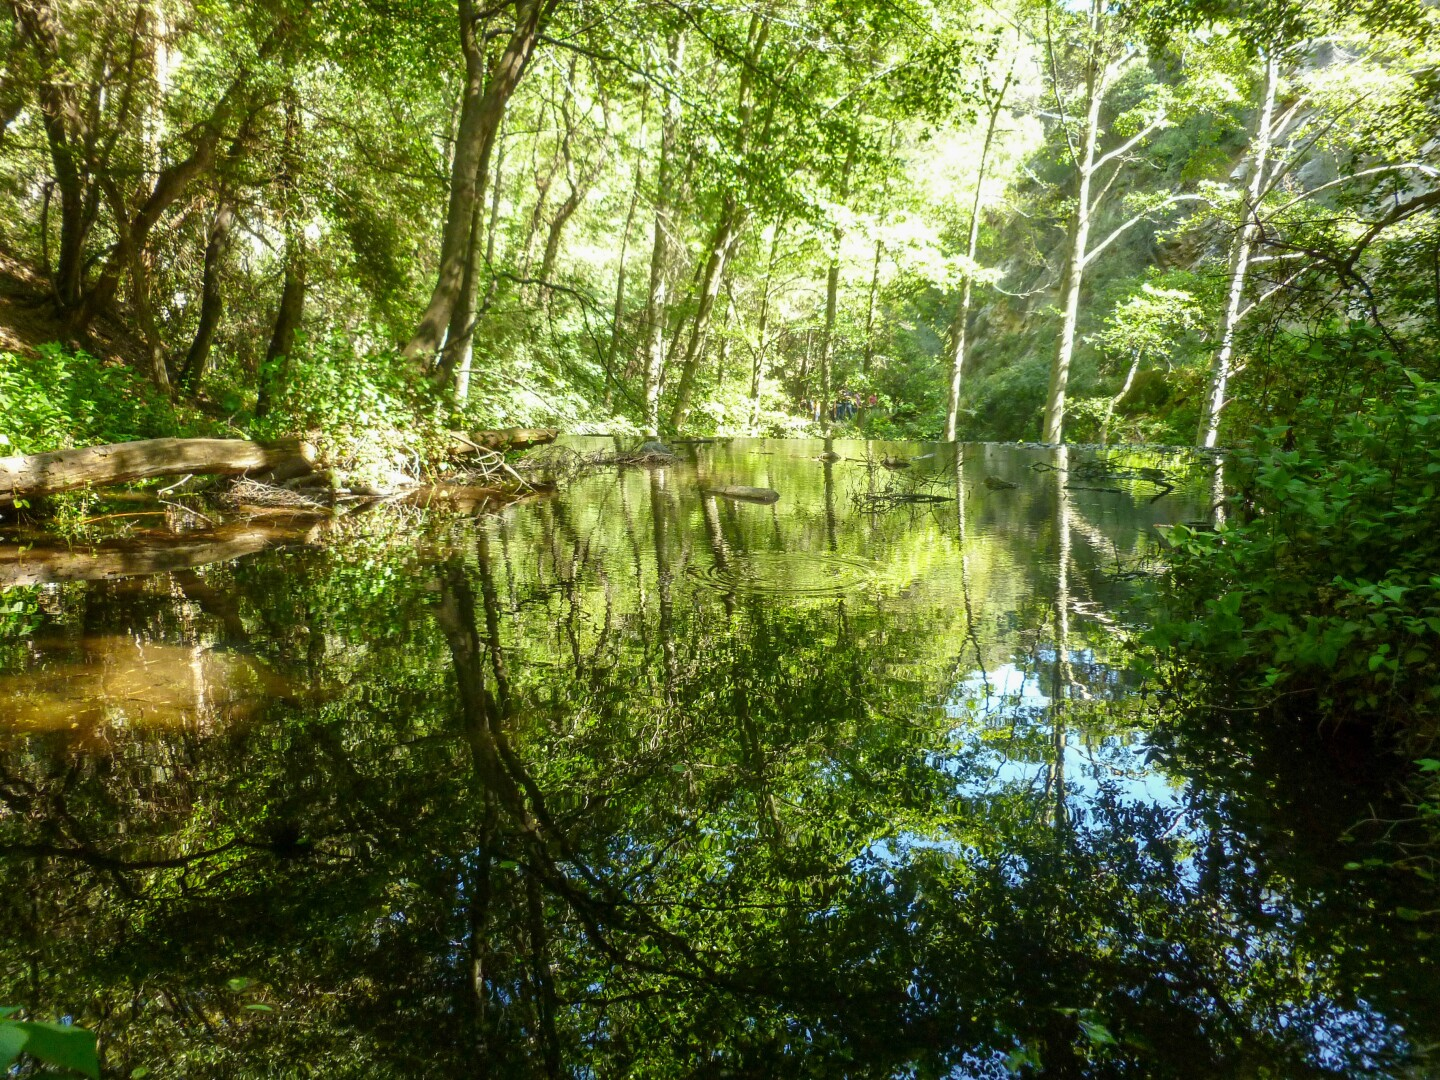 Trees reflect off the surface of a body of water at the Sturtevant Falls hike in the Chantry Flat area of the Angeles National Forest.